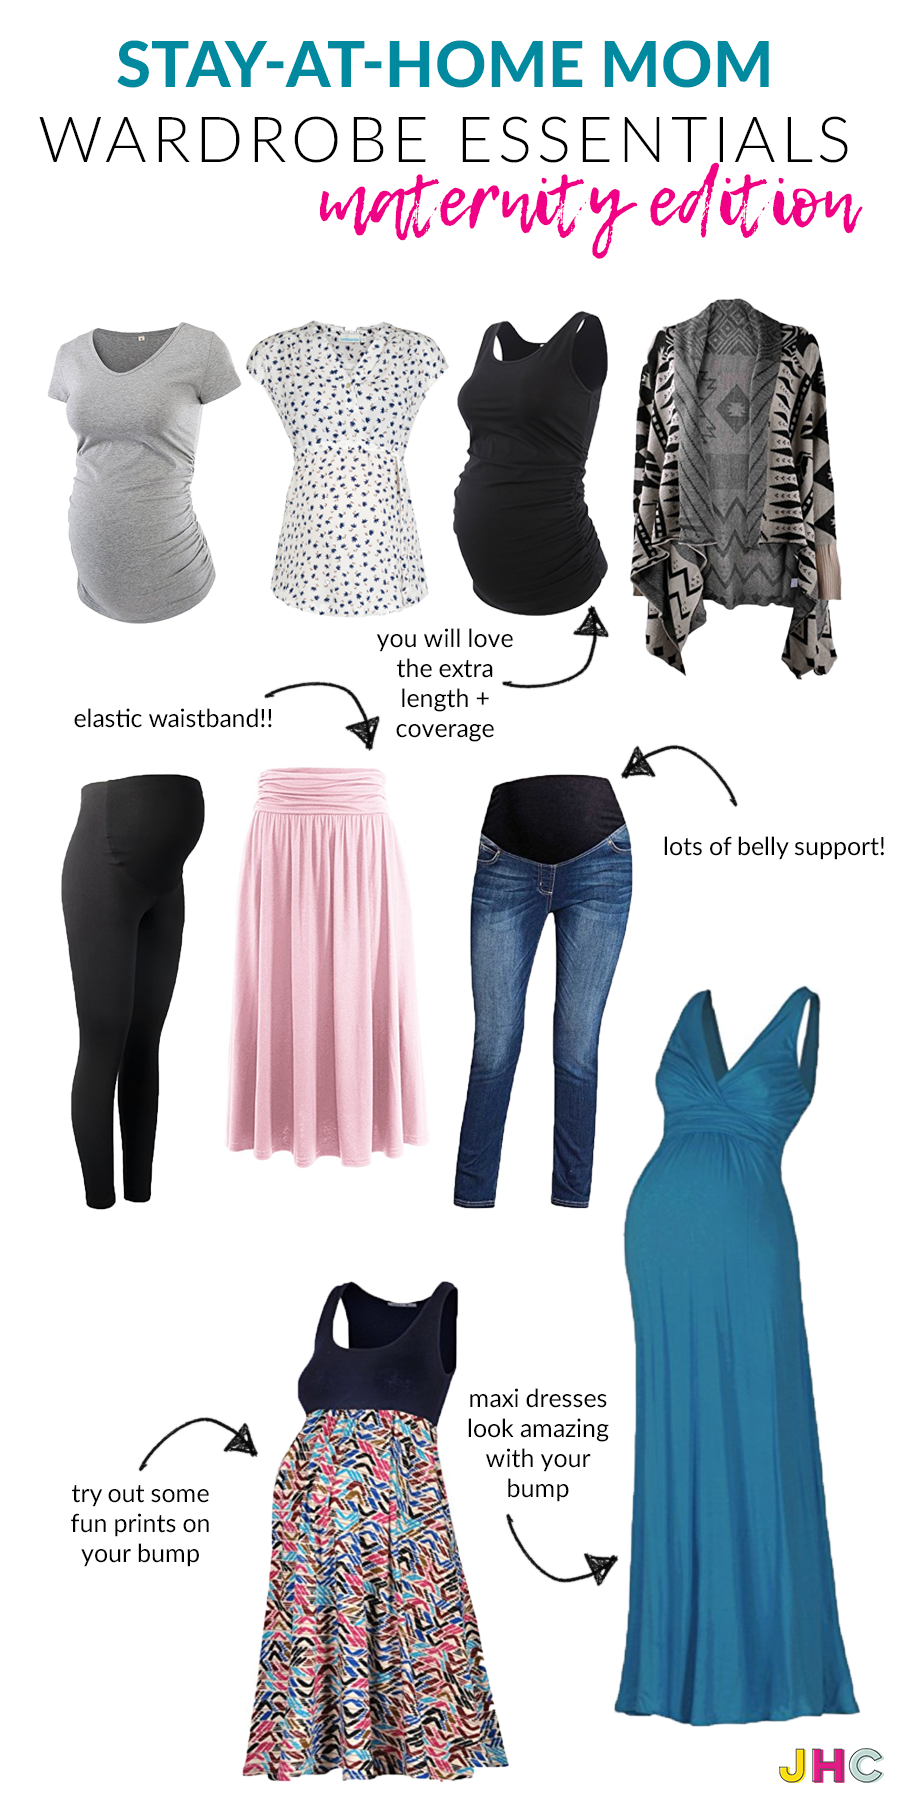 Your #maternity #style staples if you are a #SAHM #stayathomemom #bumpstyle